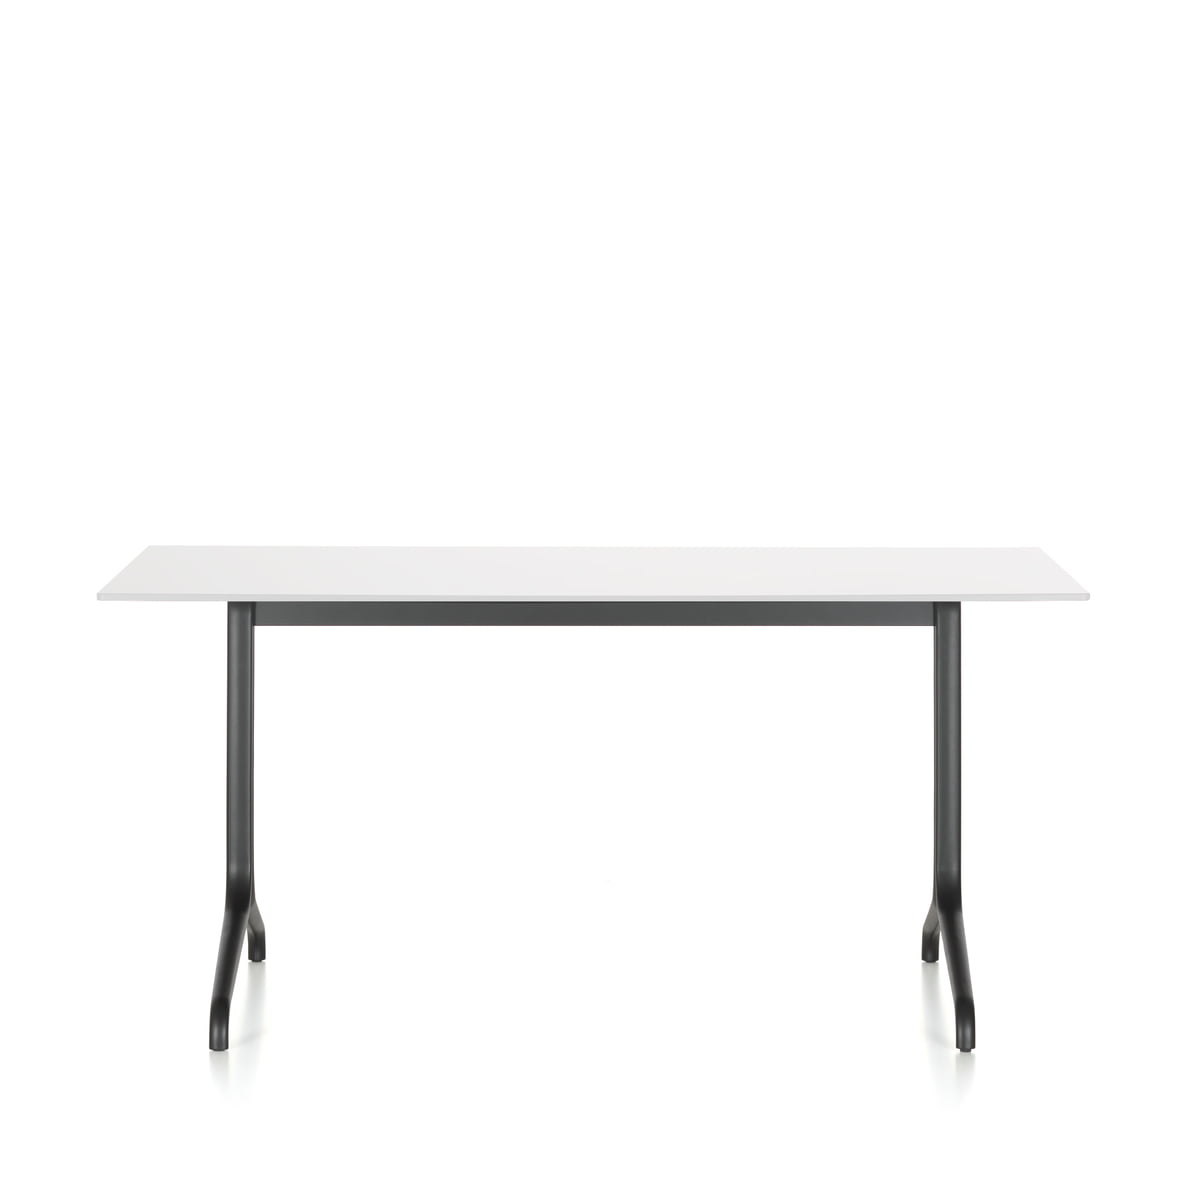 Belleville Dining Table Indoor, Rectangular, 160 X 75 Cm By Vitra In White